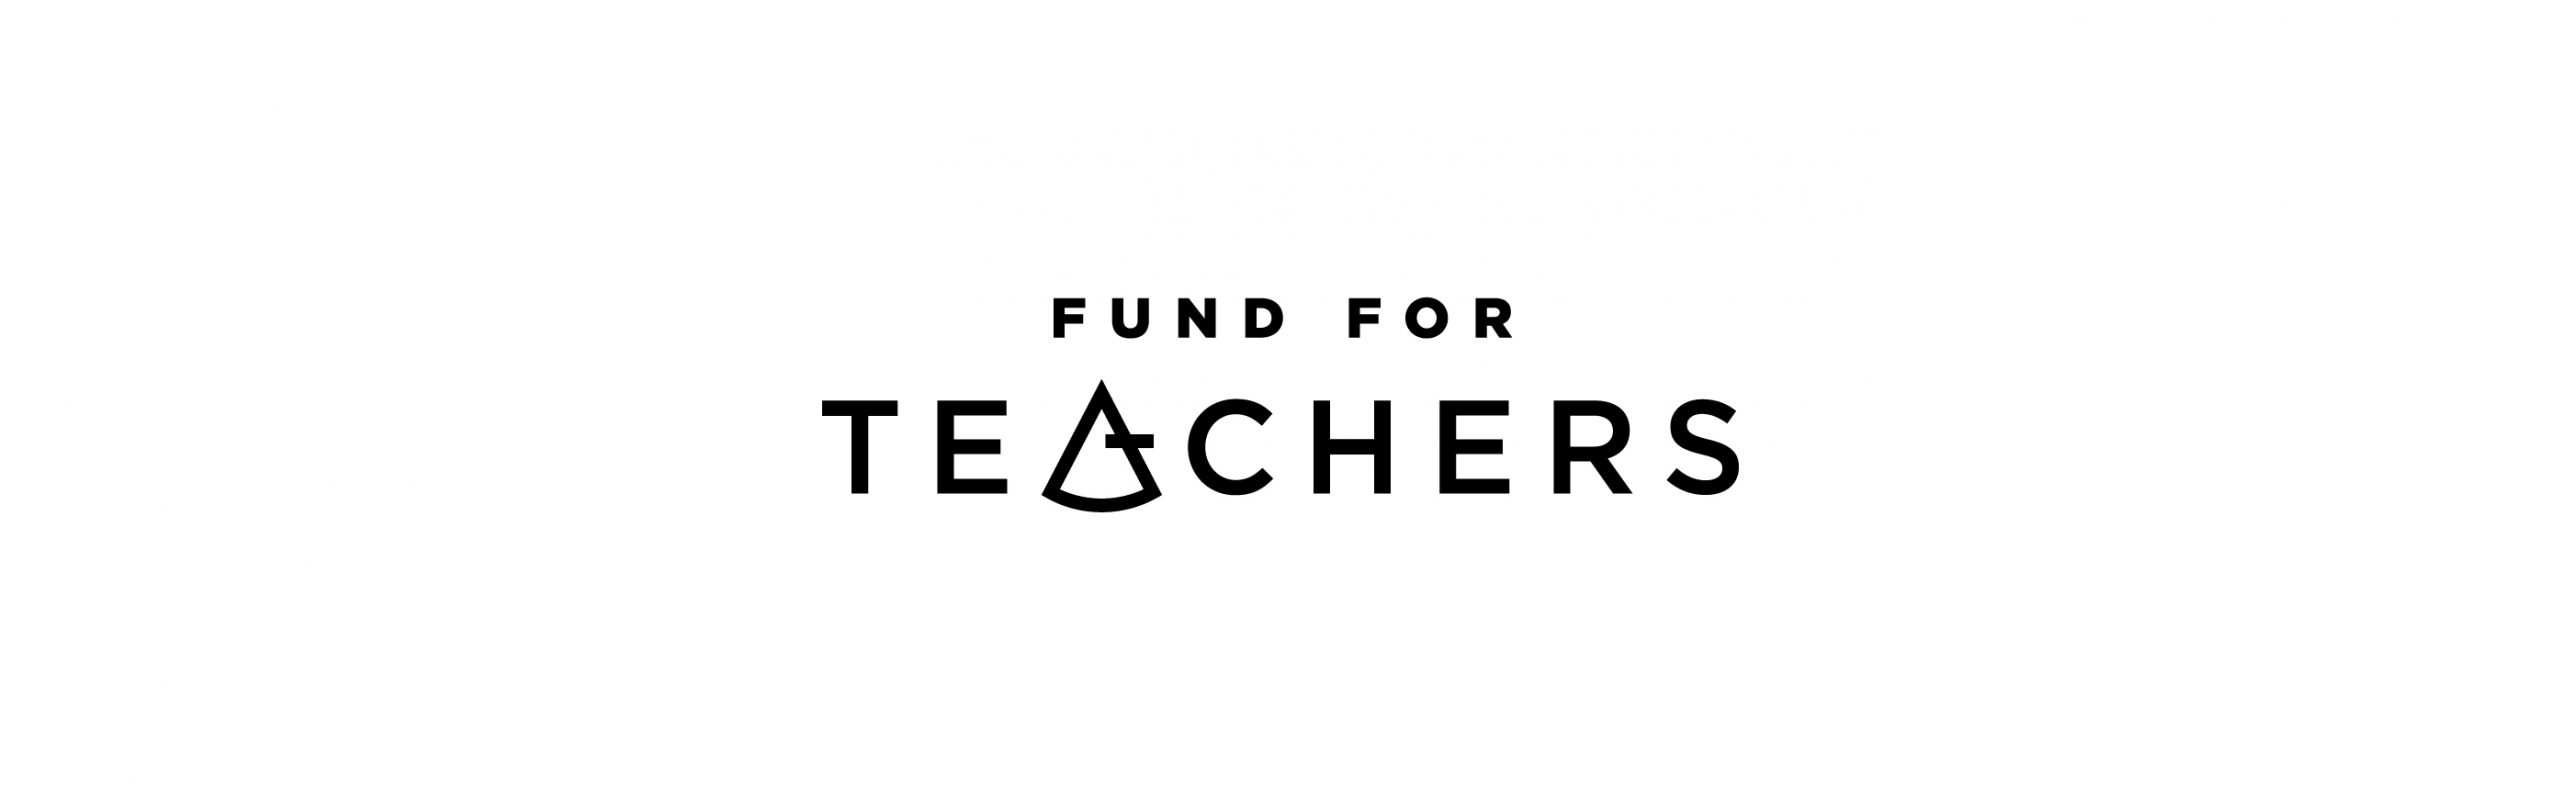 Fund for Teachers Awards More Than $132,000 in Grants to 37 Oklahoma Teachers